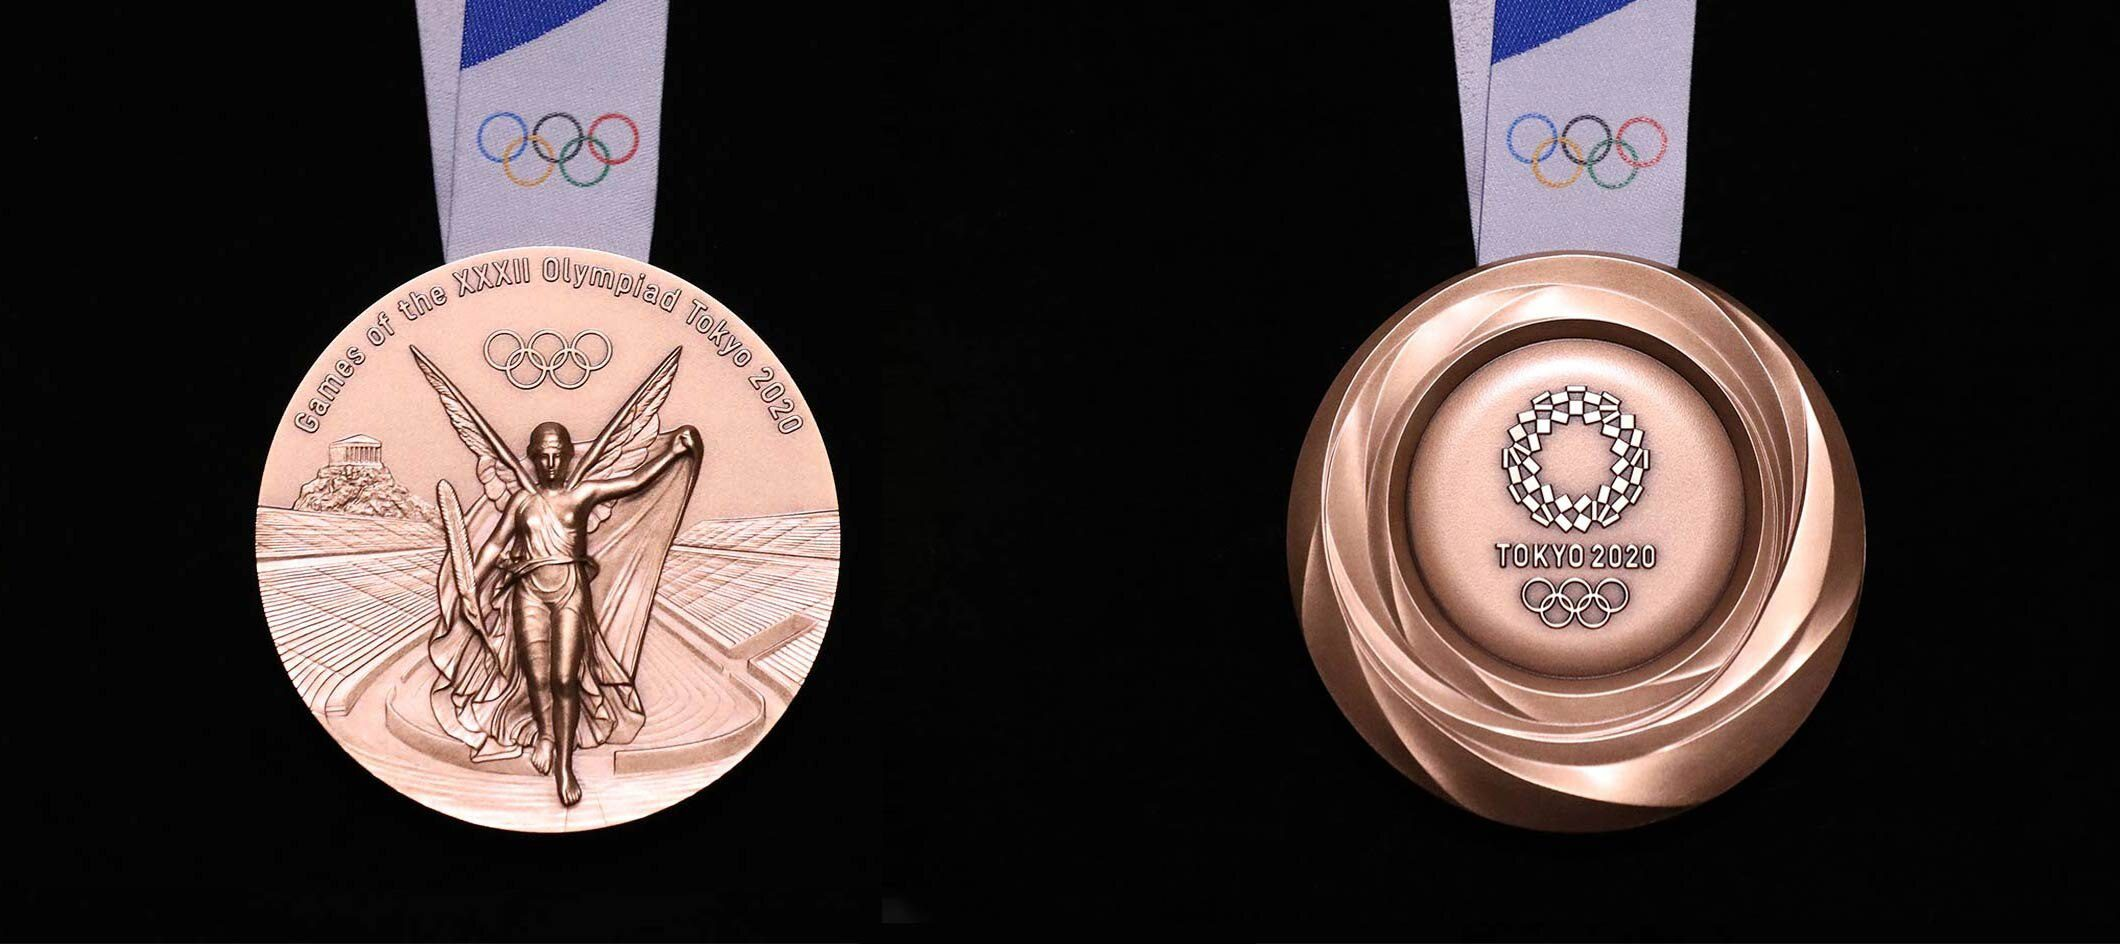 Tokyo Olympic Medals Revealed